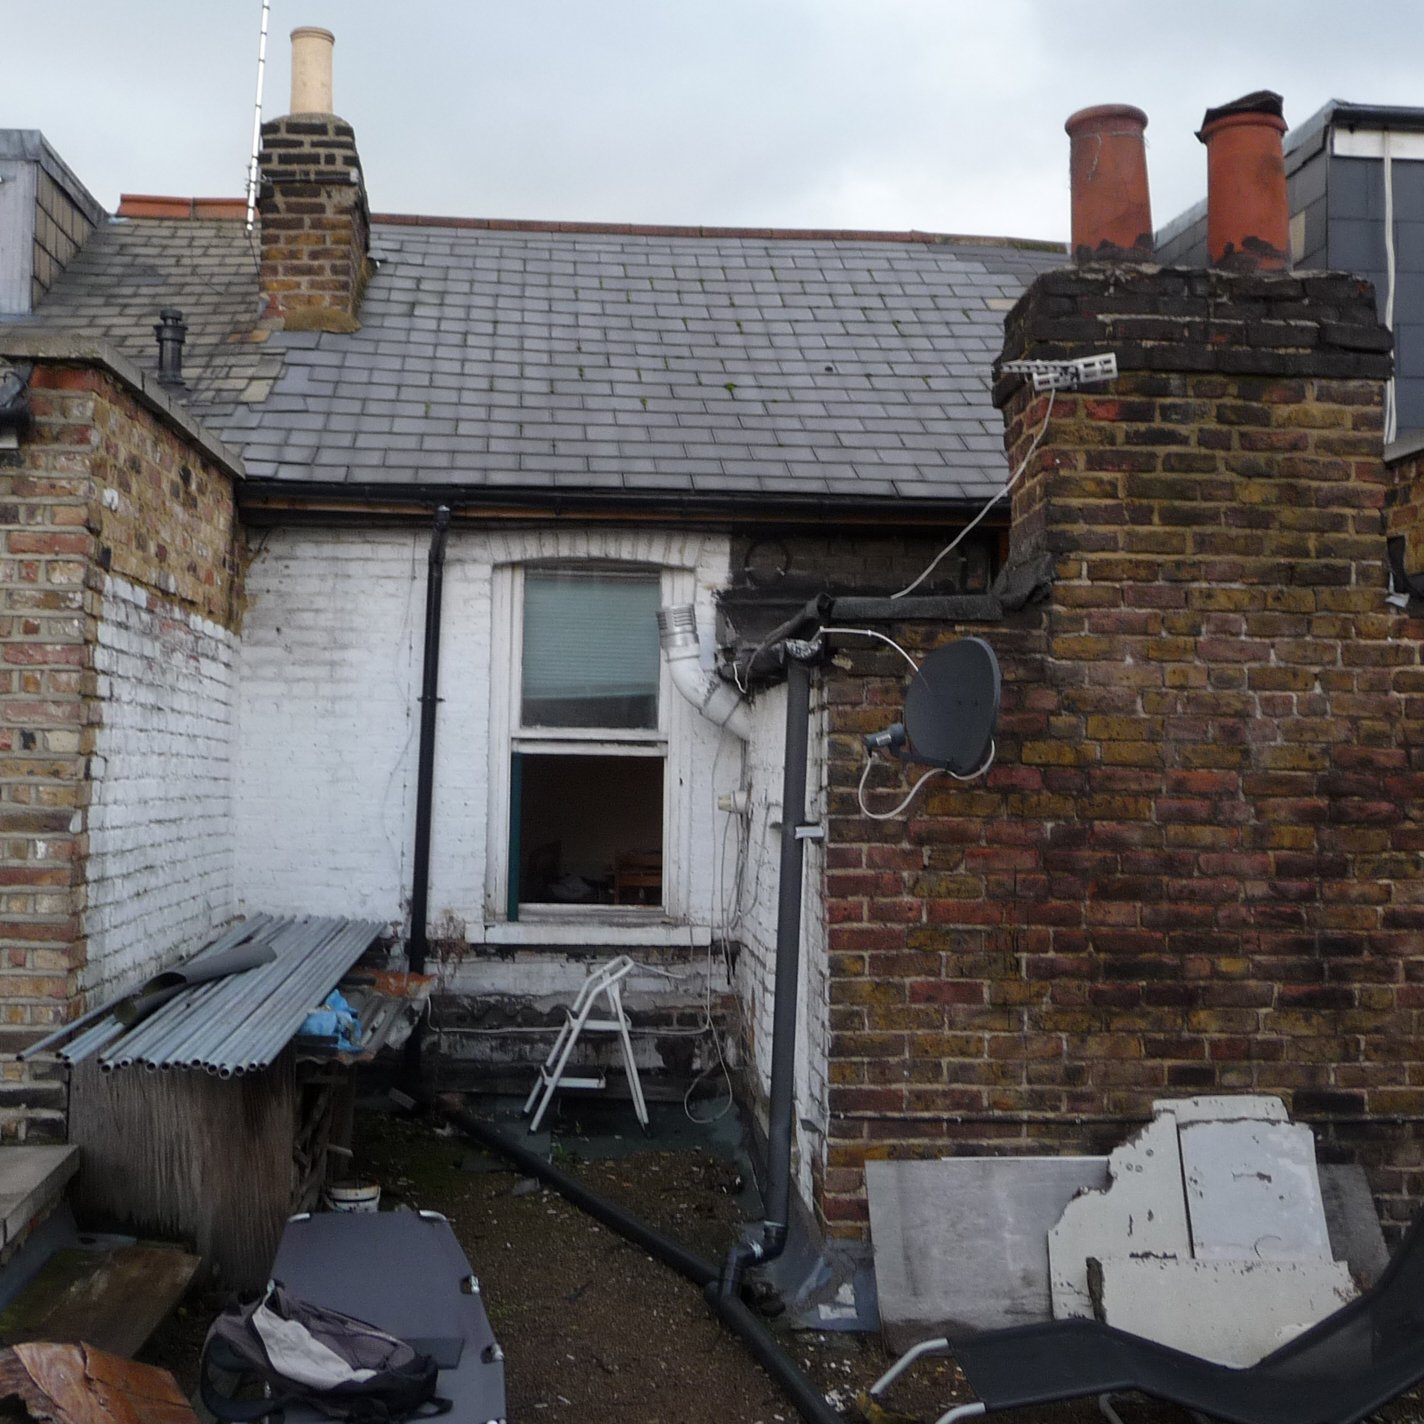 Stamford Brook H Fulham W12 9AS Flat extension Elevation 200x200 Fulham Broadway, H & Fulham SW6   Flat alterations to Mansard roof